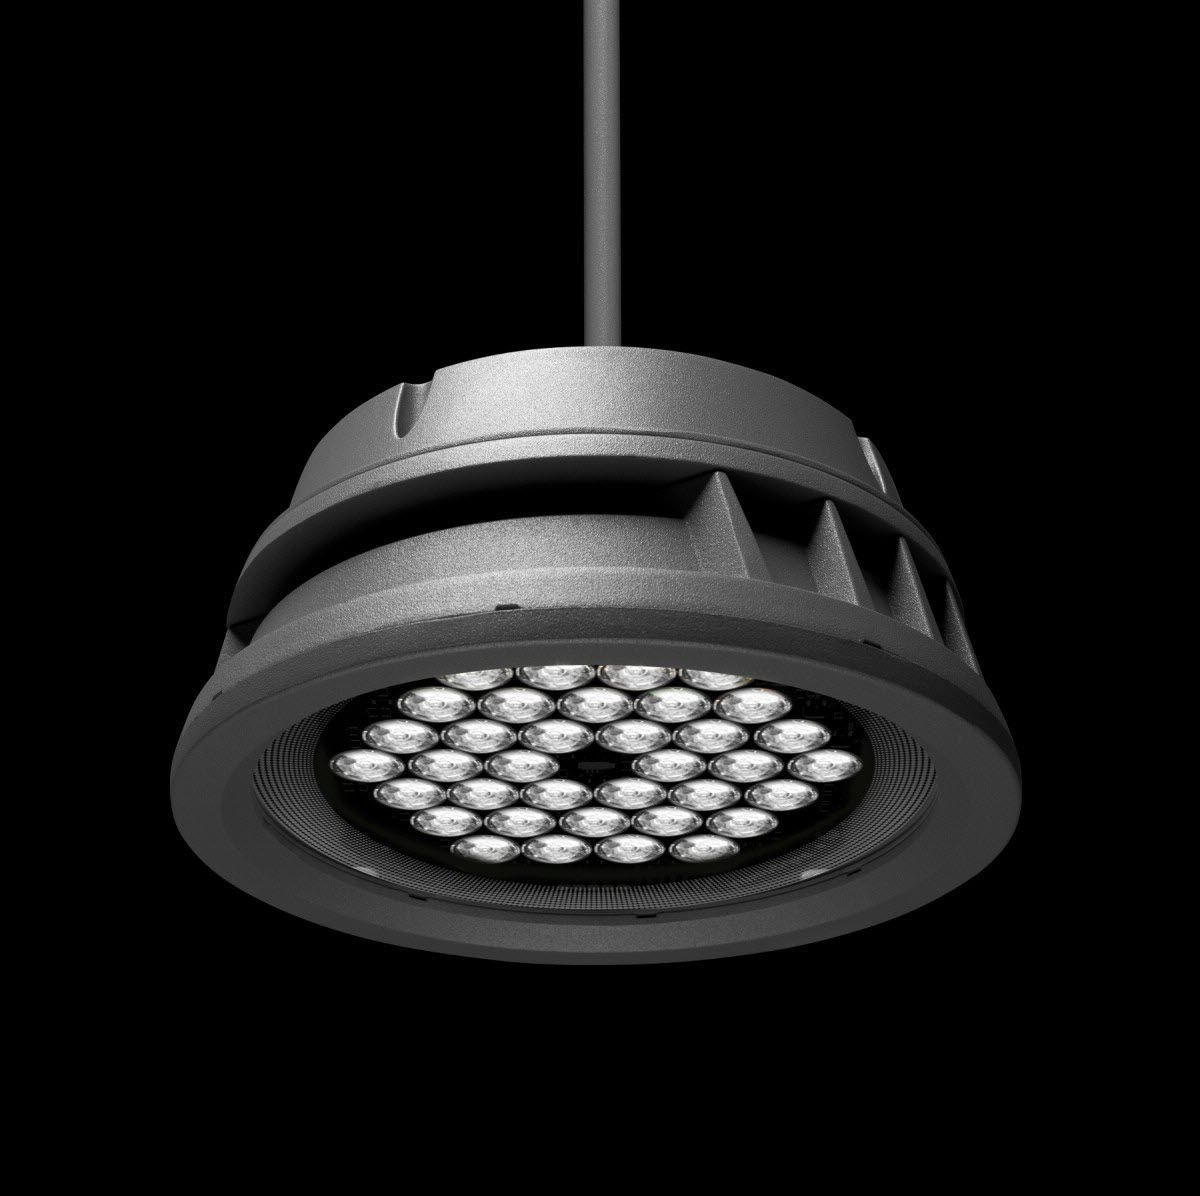 Best And Newest Hanging Light Fixture / Led / Round / Outdoor – Lumenbeam Large With Regard To Round Outdoor Hanging Lights (View 2 of 20)